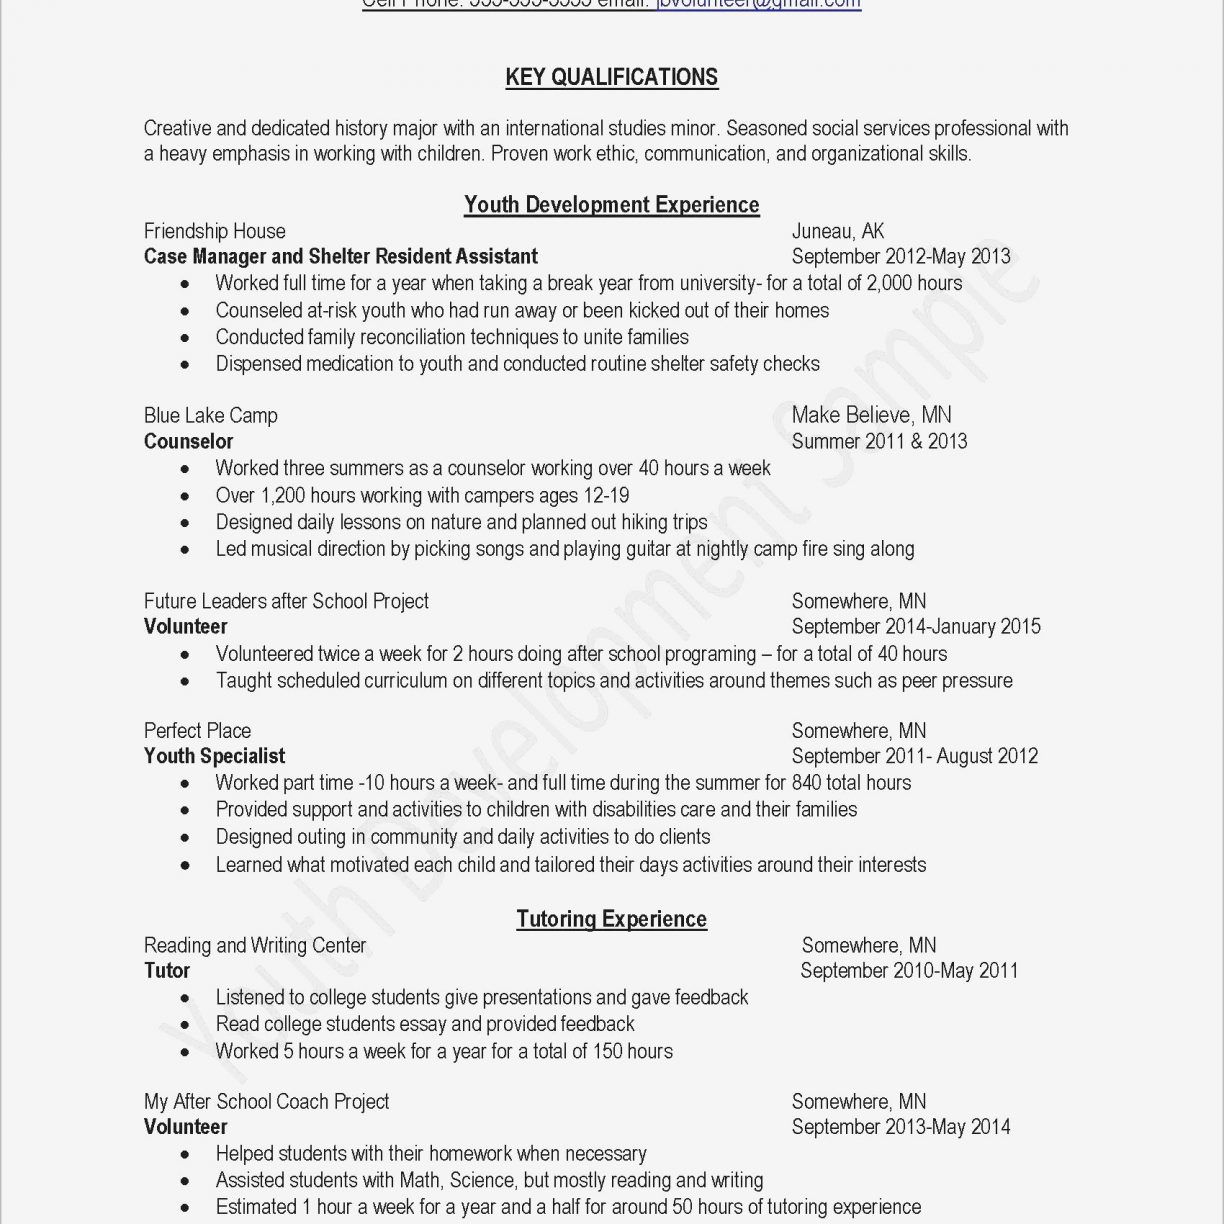 012 Free Resume Templates Pdf Download Samplesormat Or Doc Builder Easy 1224x1224 Essay Example Anarchism And Other Incredible Essays Emma Goldman Summary Mla Citation Full